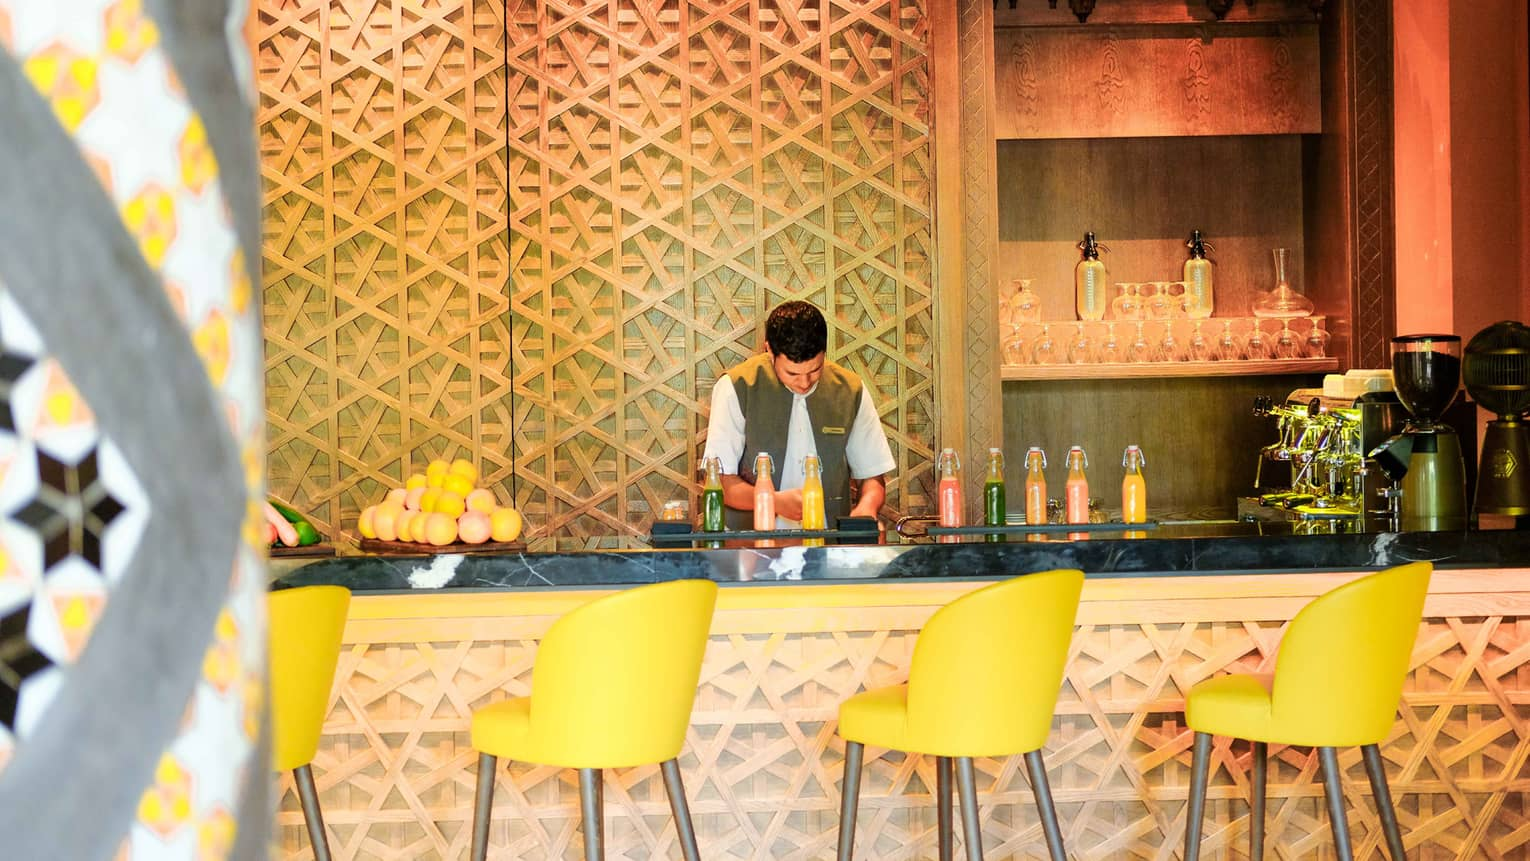 Bartender with fresh juice in glass jugs, fresh oranges on decorative carved bar lined with yellow stools